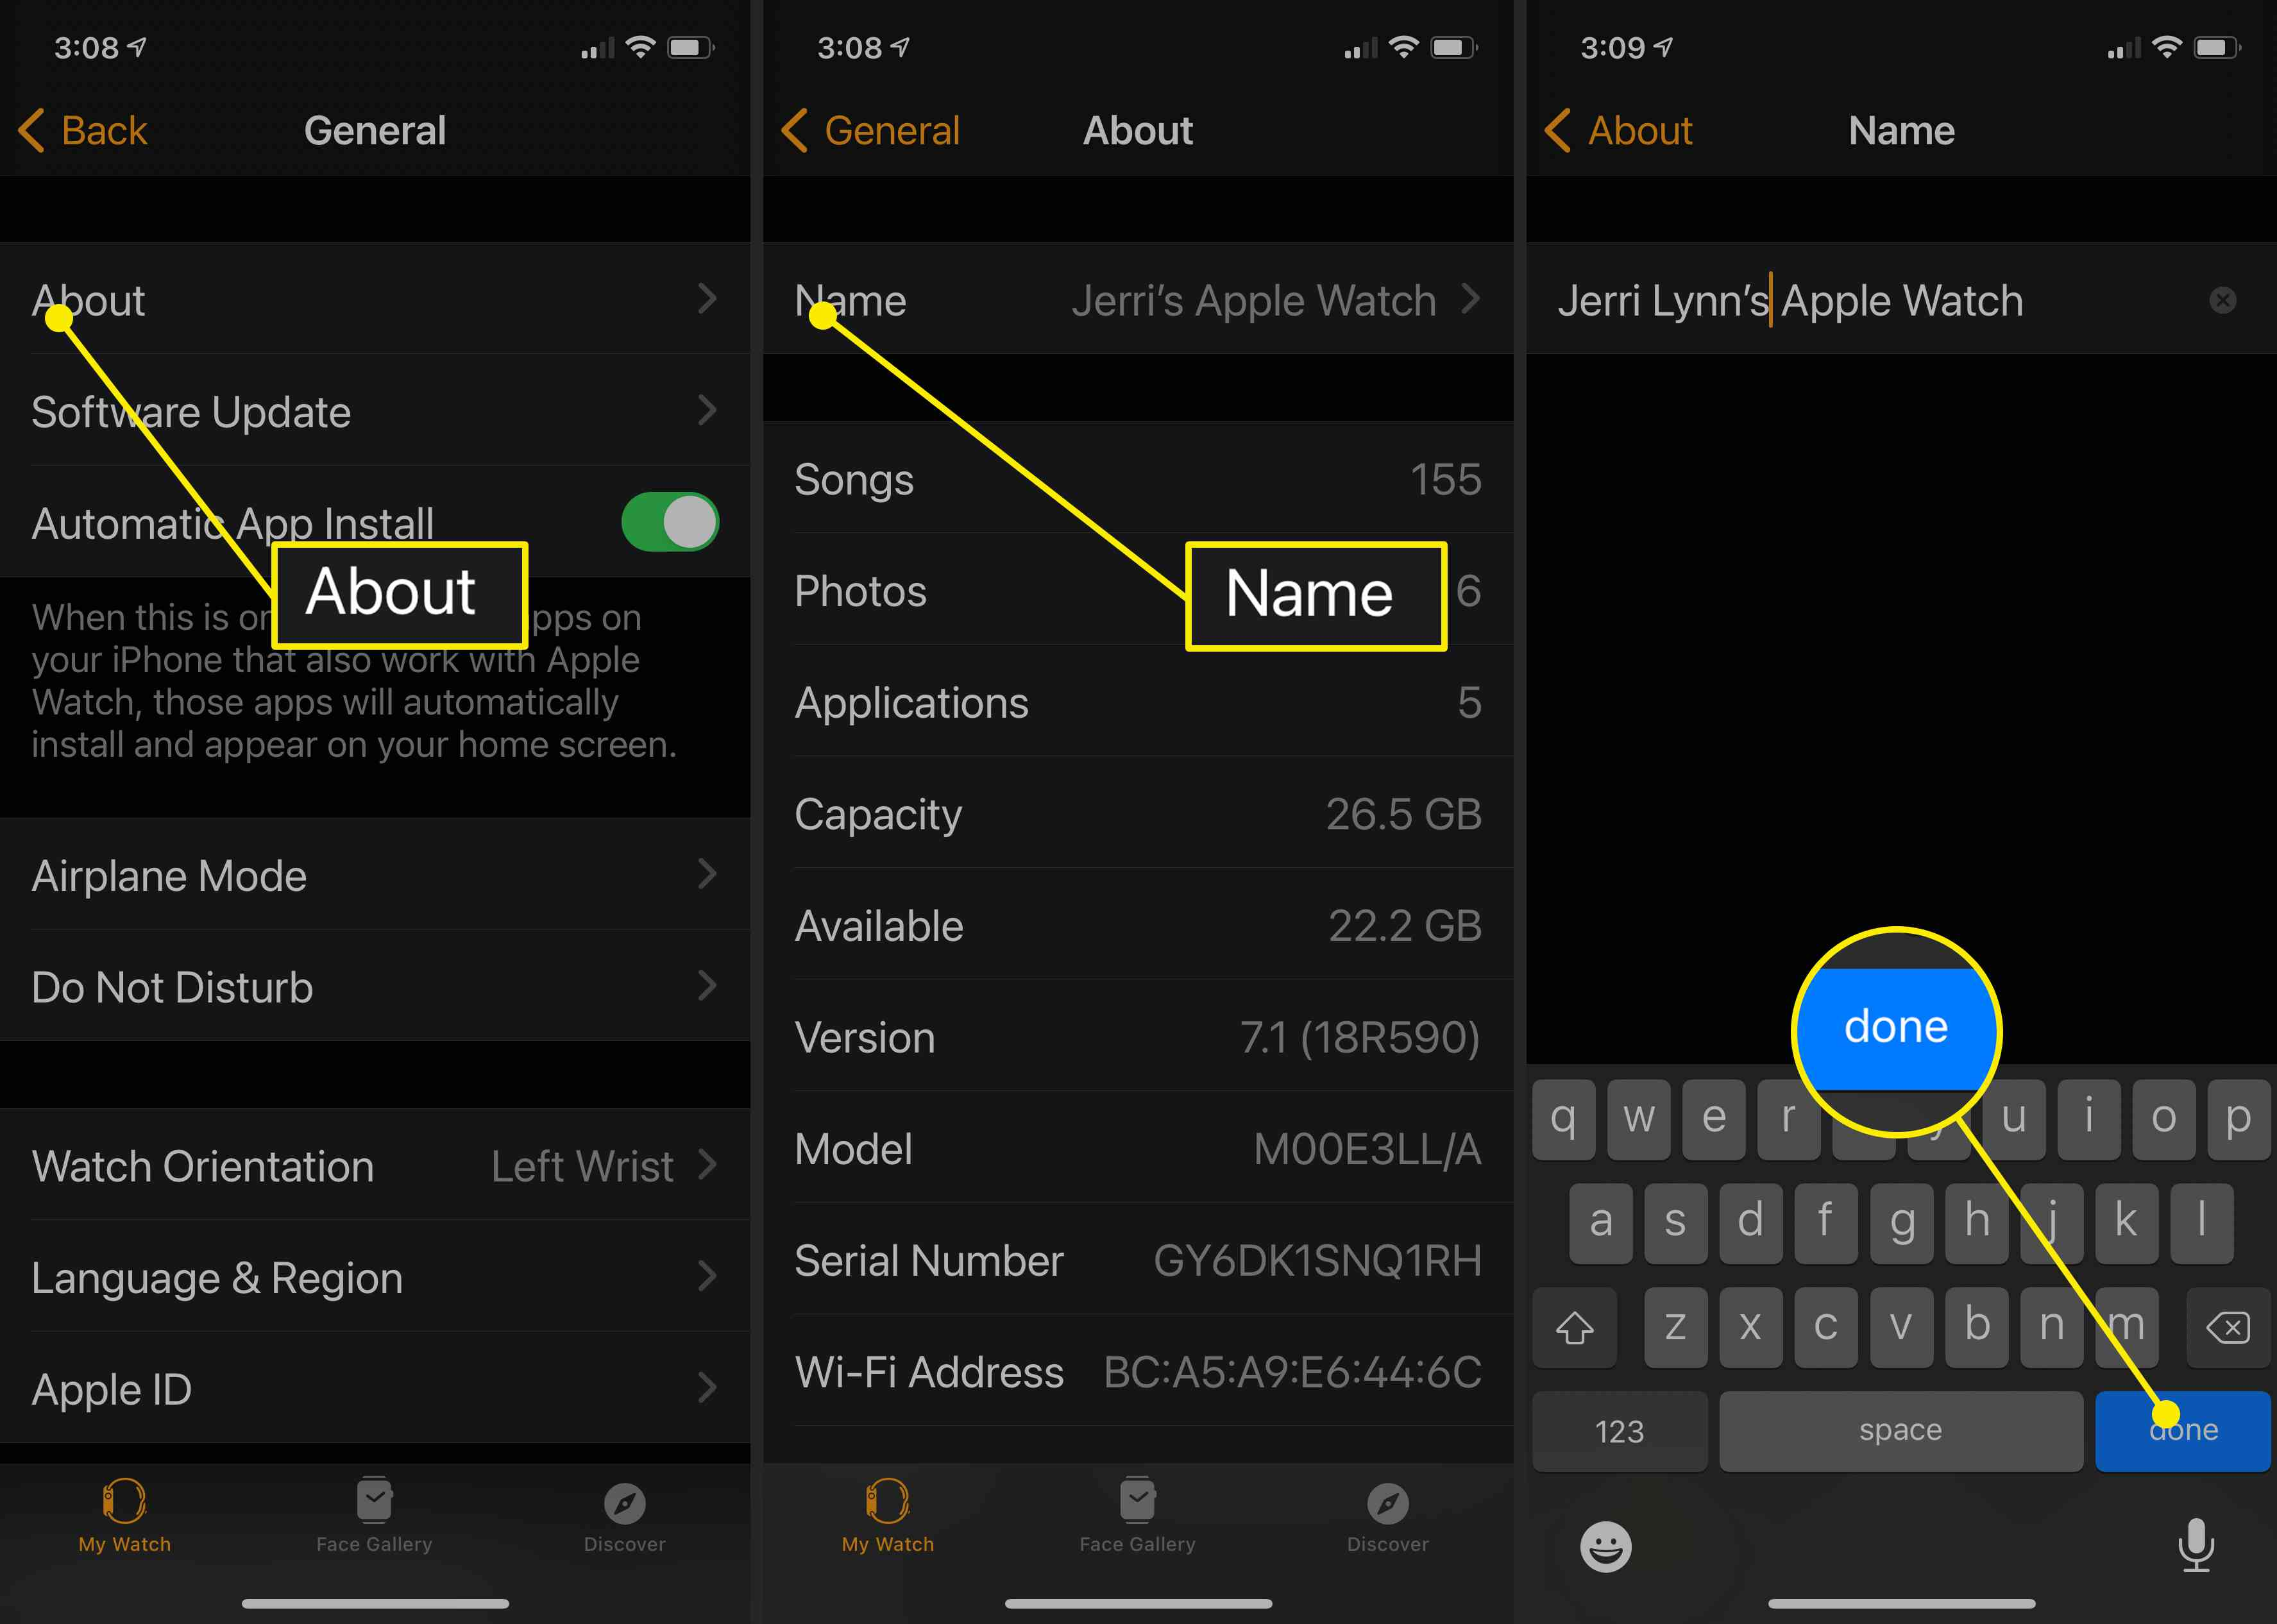 Screenshots showing where and how to change the name of an Apple Watch using the Apple Watch app on iPhone.